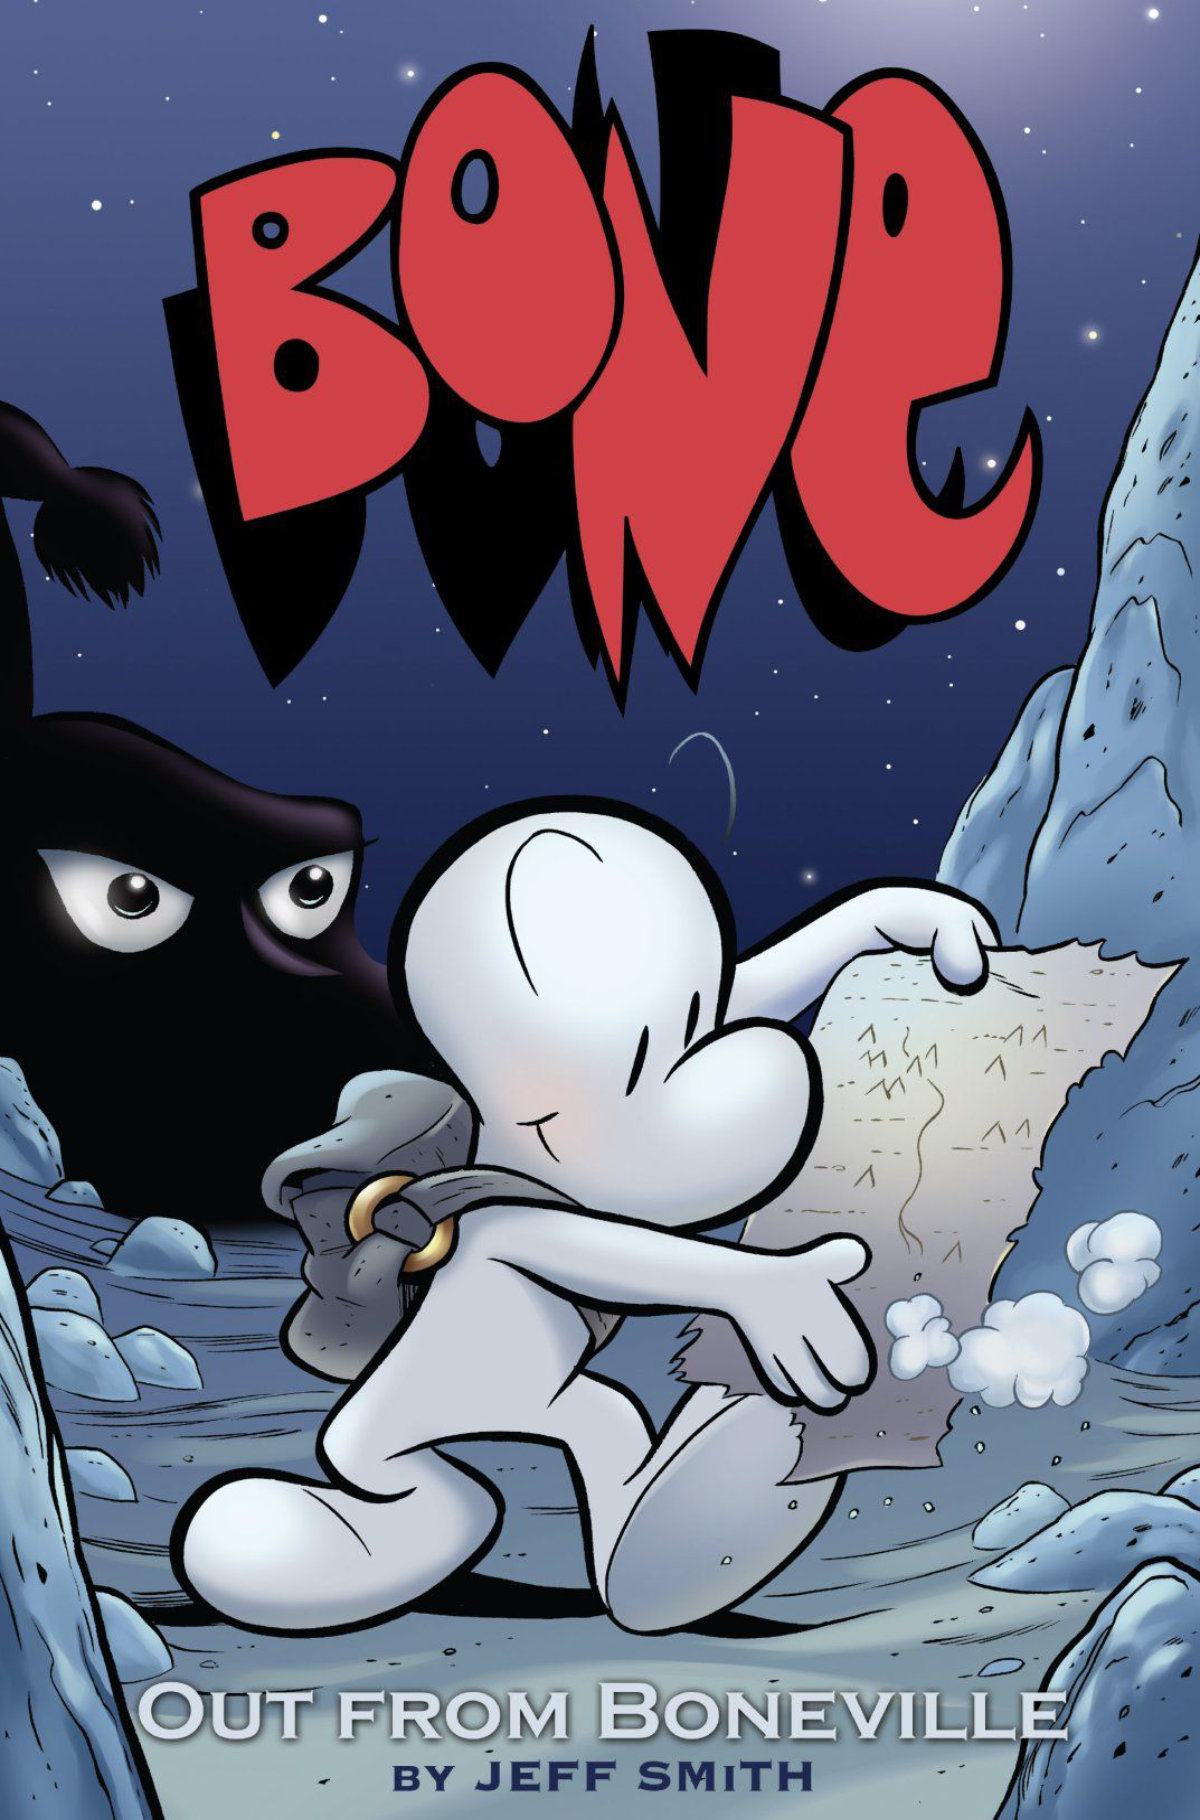 Bone Vol 1 by Jeff Smith